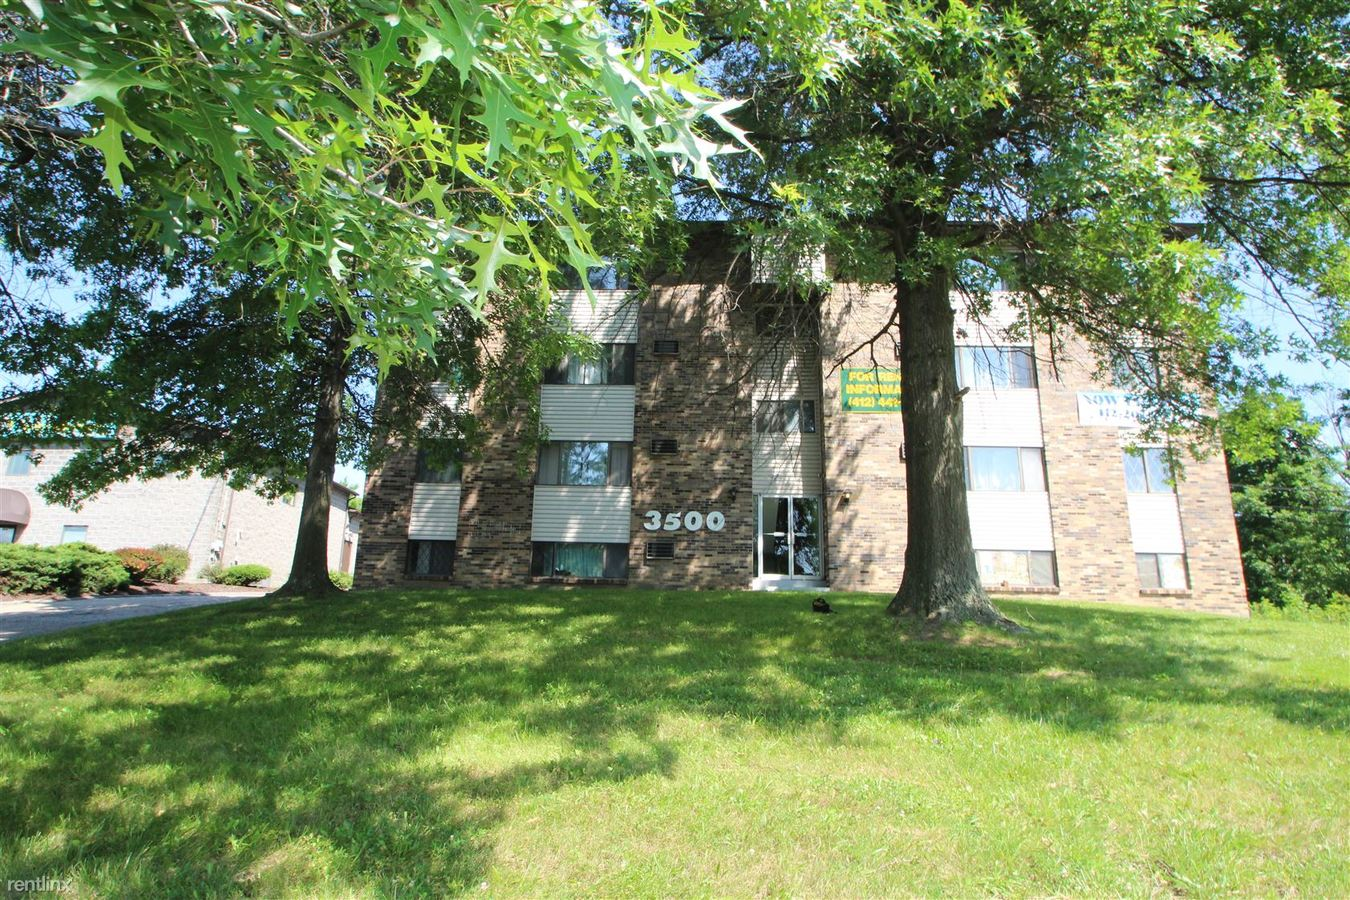 1 Bedroom 1 Bathroom Apartment for rent at 3500 Willow Ave in Castle Shannon, PA